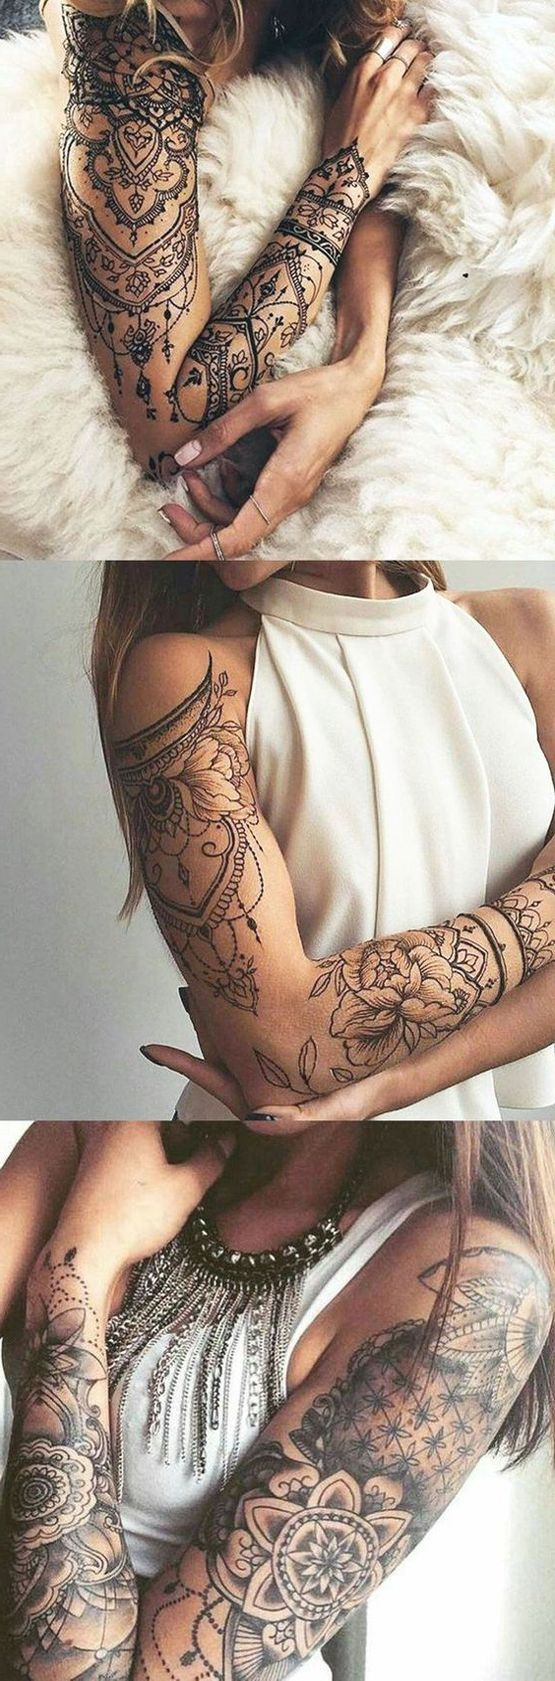 43 Half sleeve tattoos for women trend on 2018